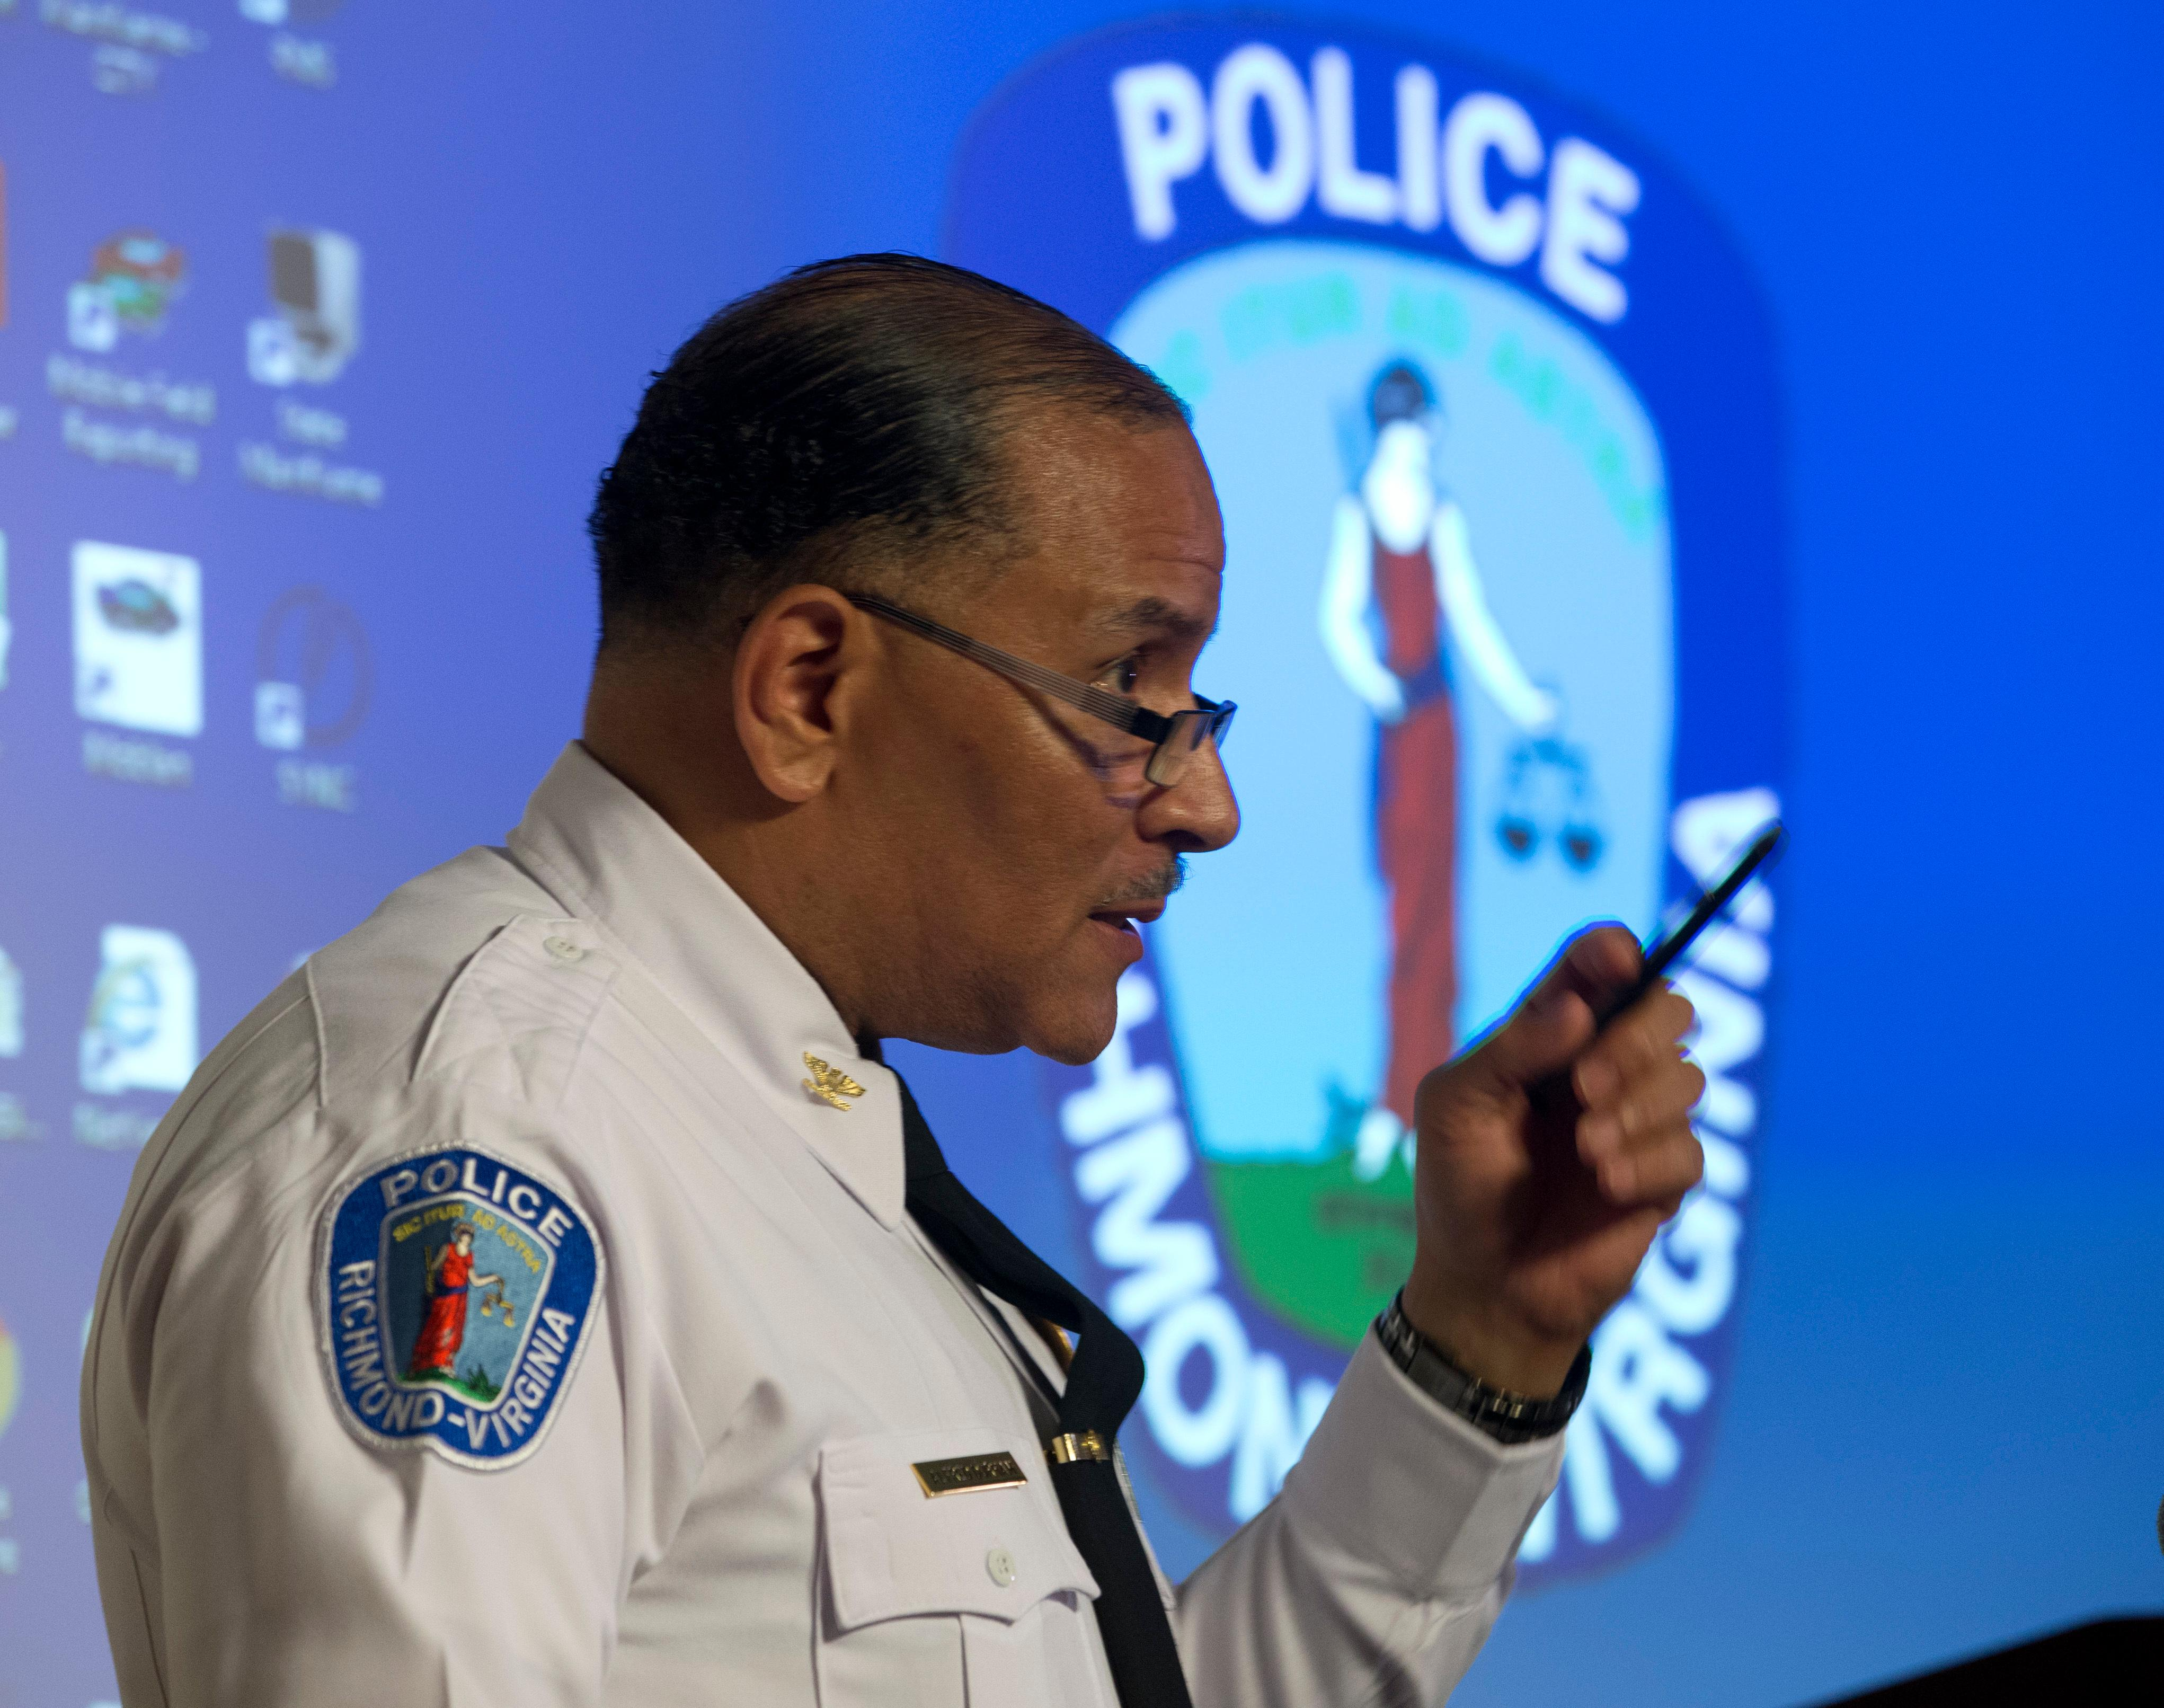 Richmond Police Chief, Alfred Durham, gestures during a news conference in Richmond, Va., Friday, May 25, 2018. Durham released body cam video fo the shooting of Marcus-David Peters last week.  Durham released the video of Marcus-David Peters' fatal shooting earlier this month. The video shows the officer first used a stun gun when Peters approached him. Police say it was not effective and the officer then shot Peters twice in the abdomen. (AP Photo/Steve Helber)